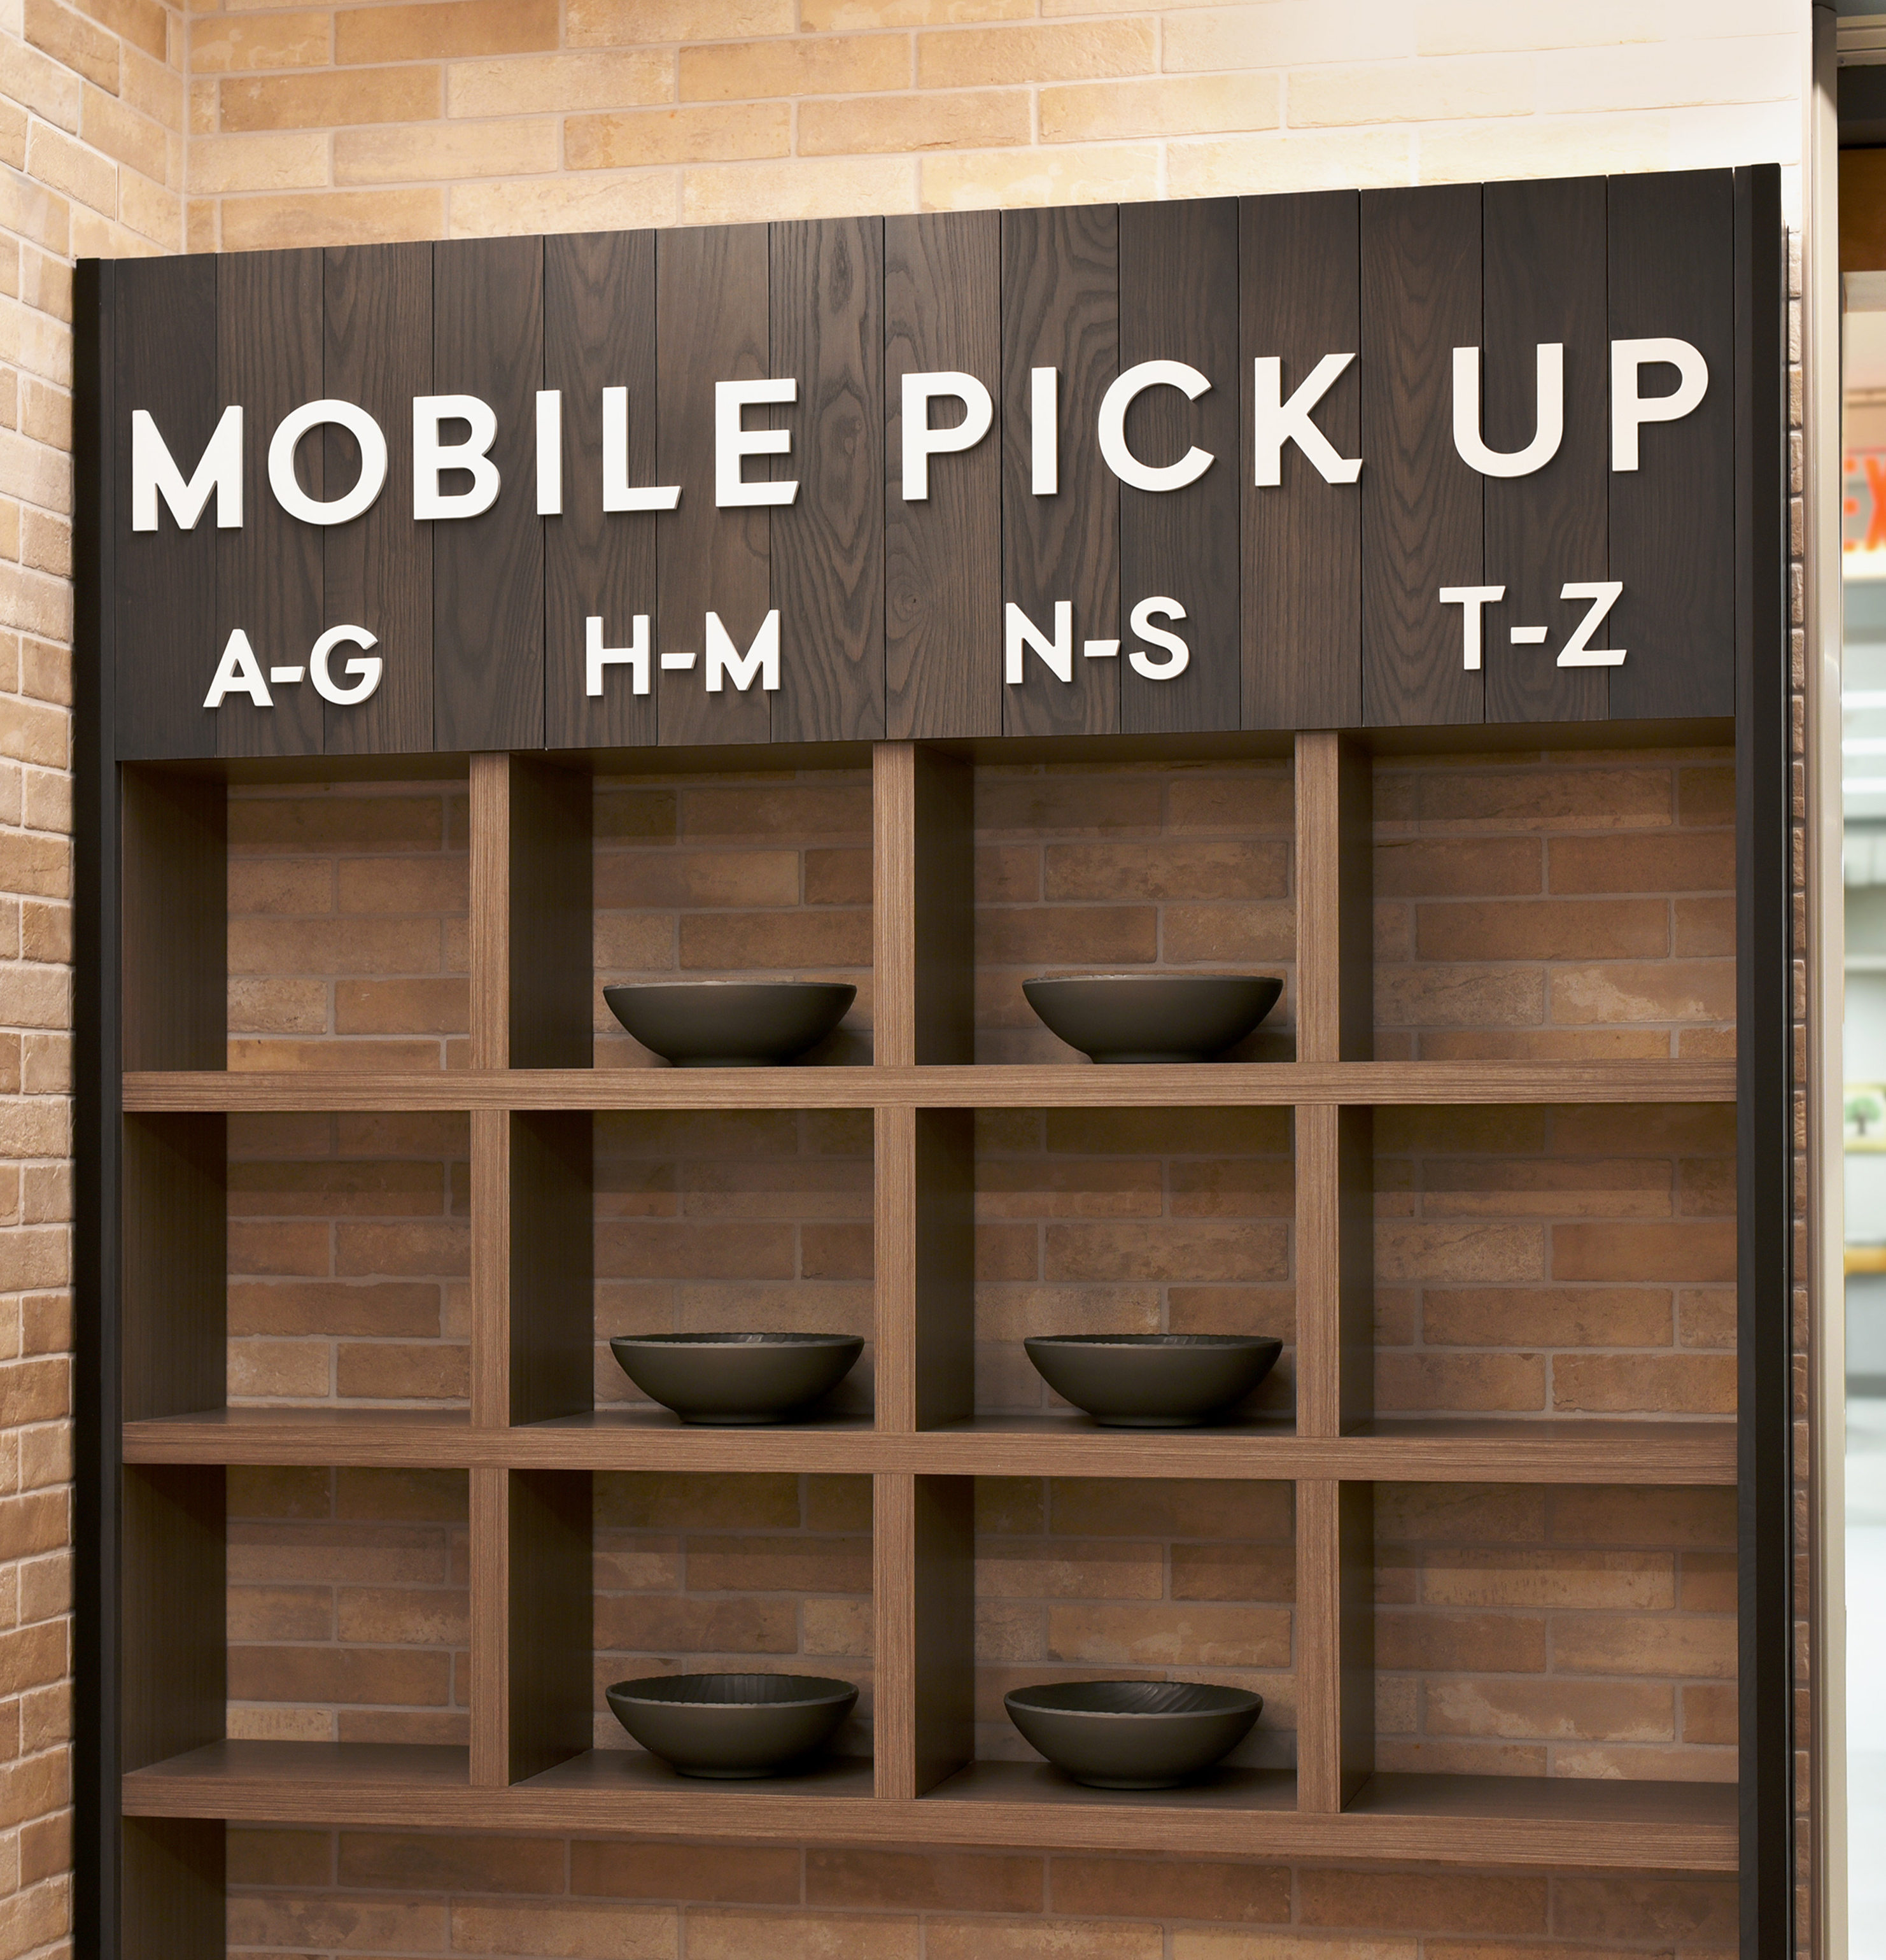 Mobile phone station with ethos lettering